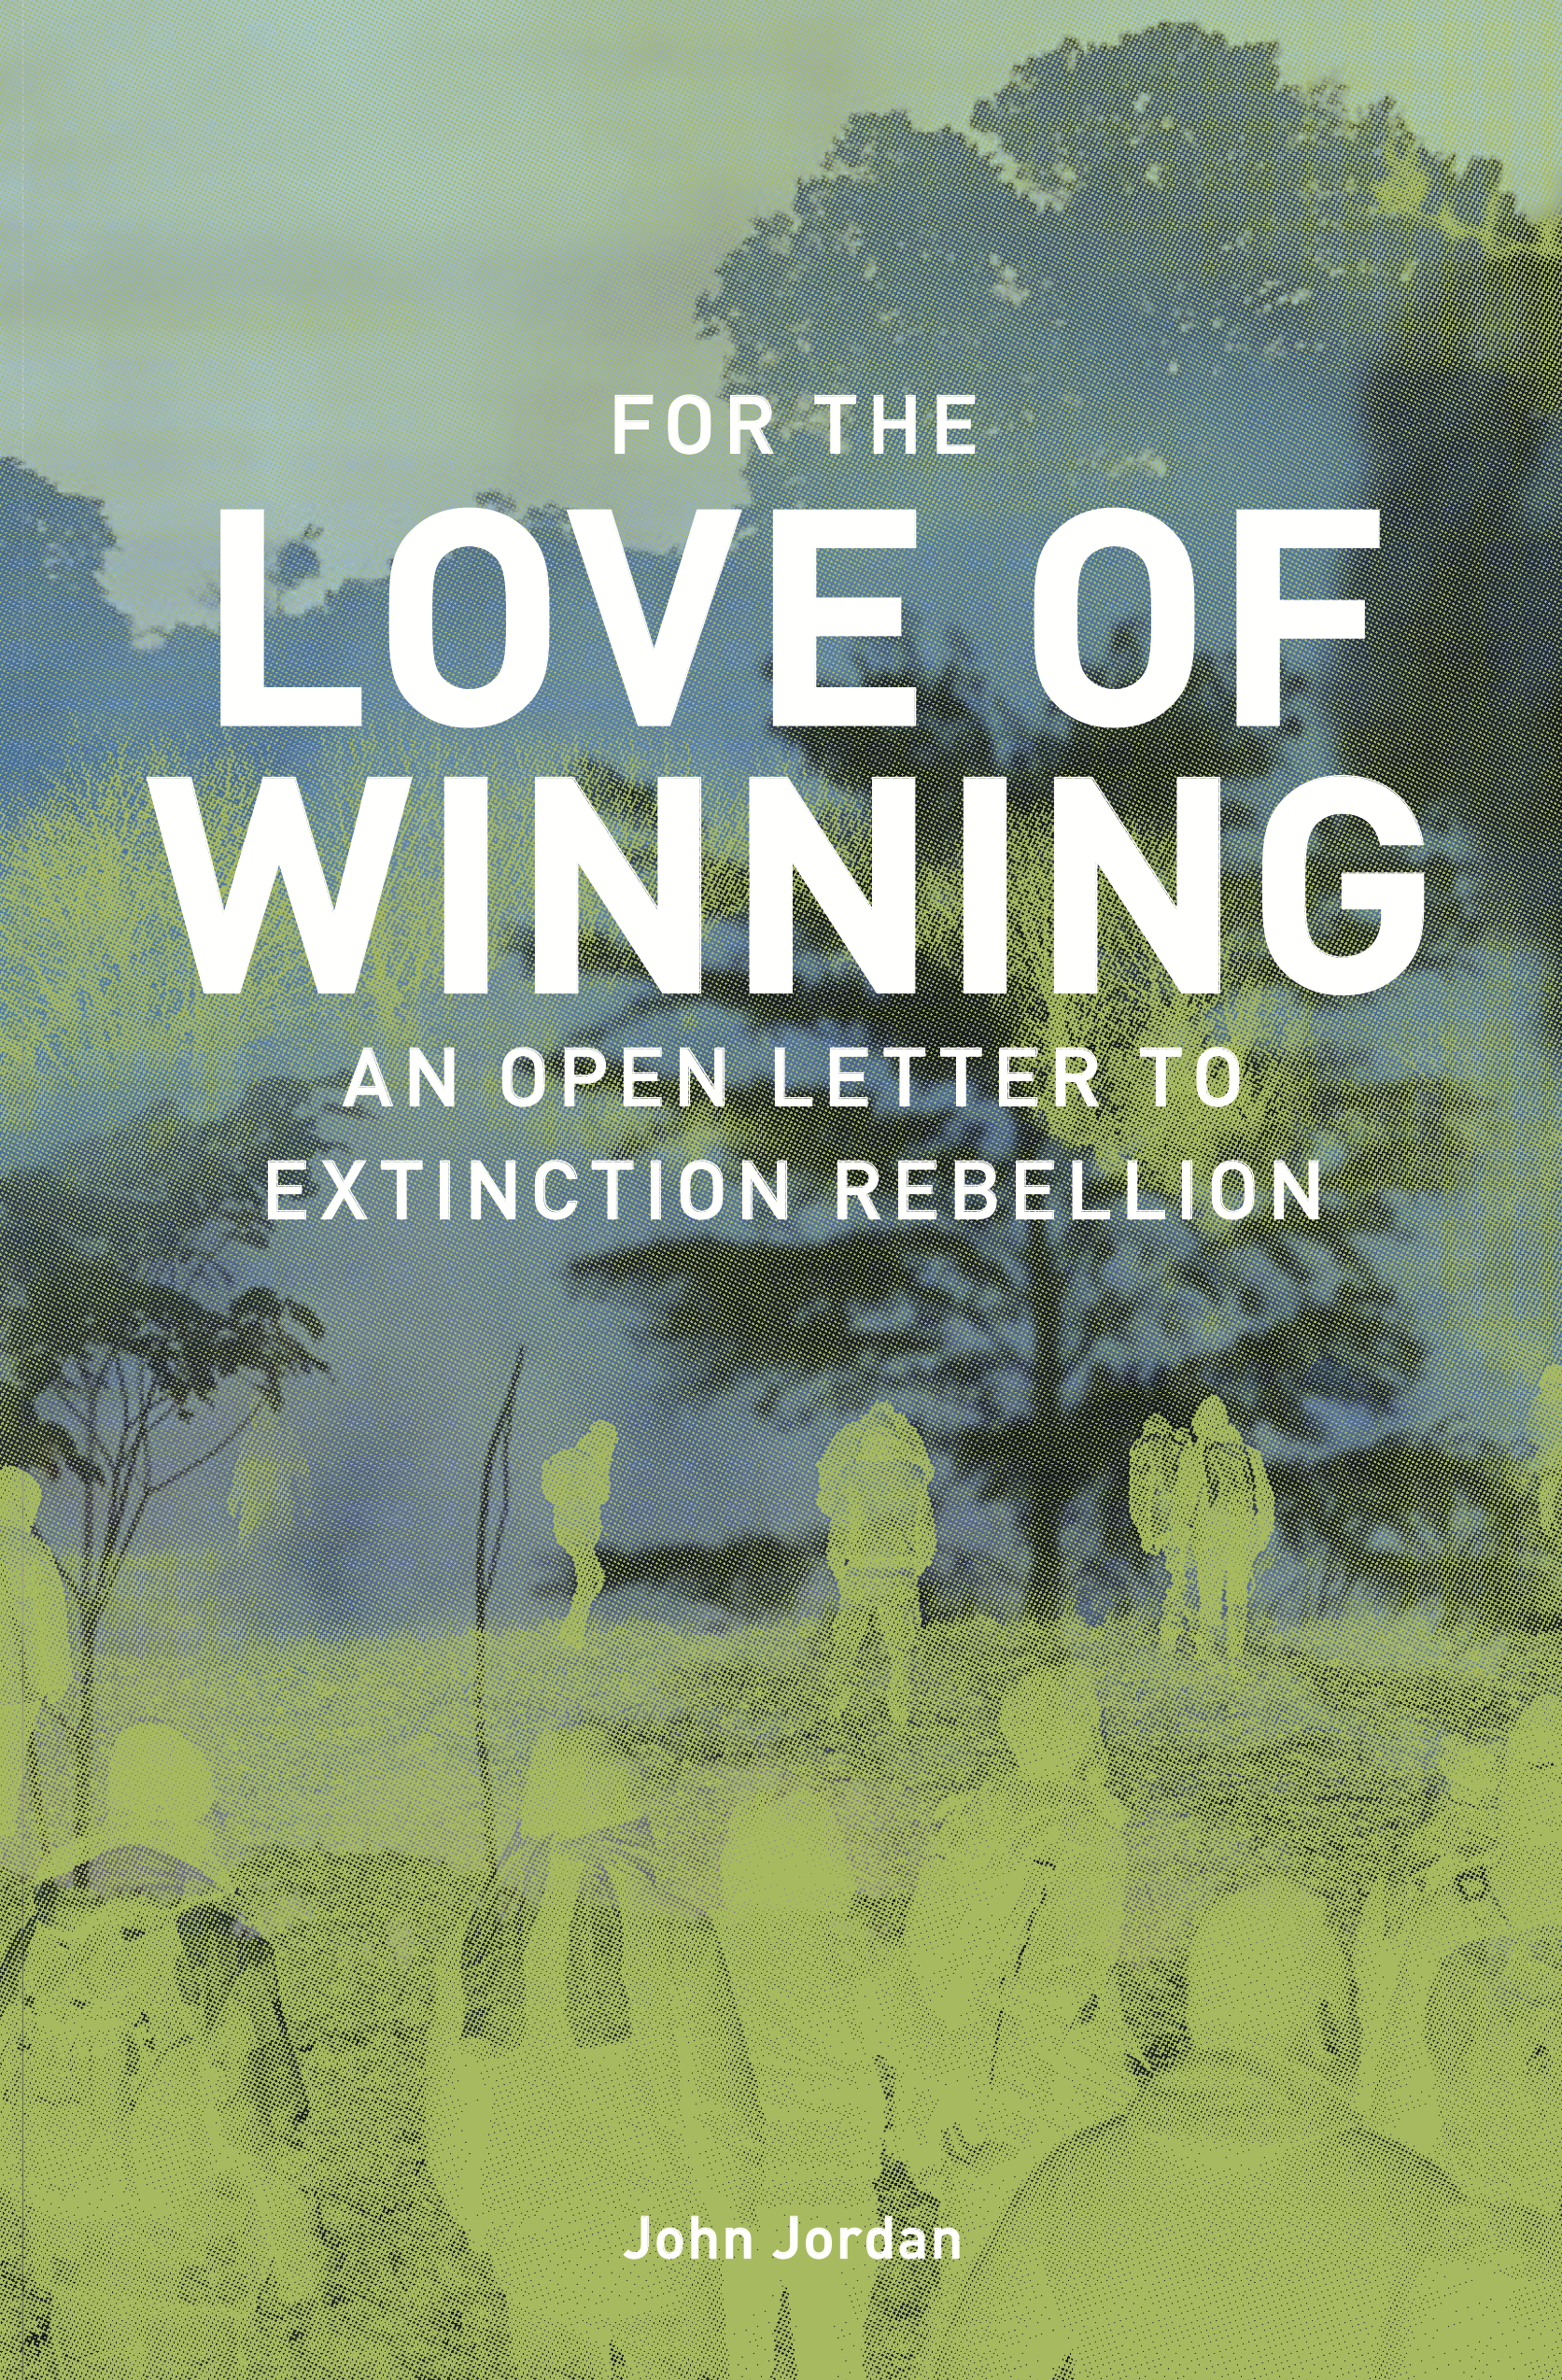 Cover Image for For the Love of Winning: An Open Letter to Extinction Rebellion